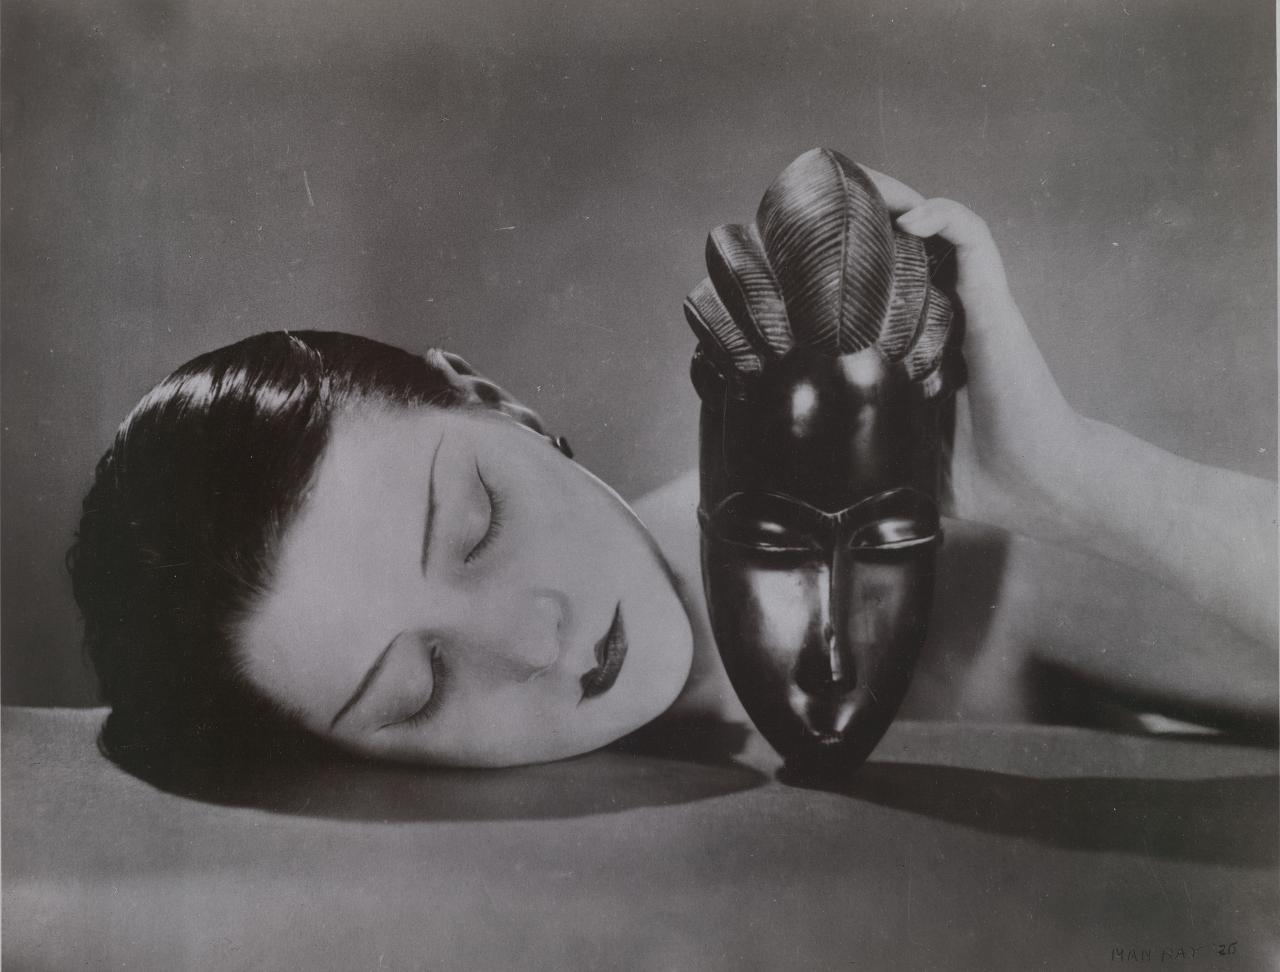 MAN RAY Kiki with African mask 1926